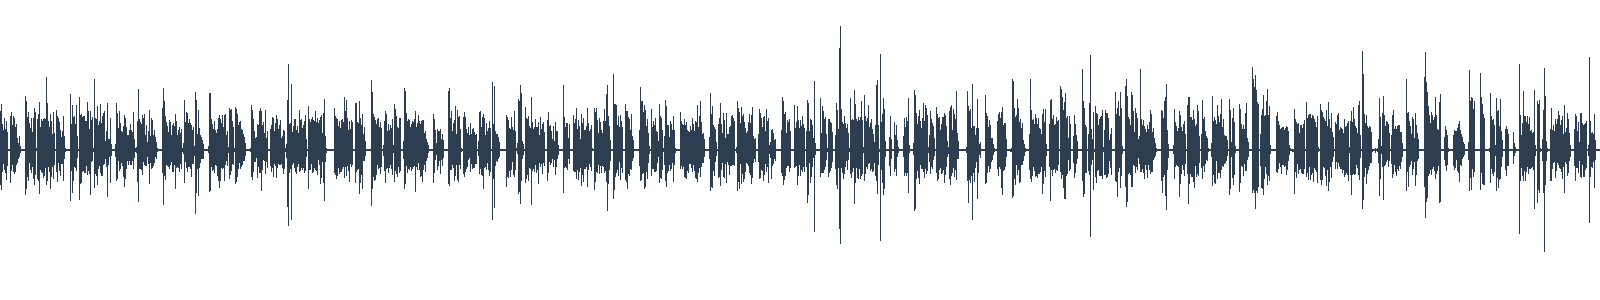 Drevo waveform